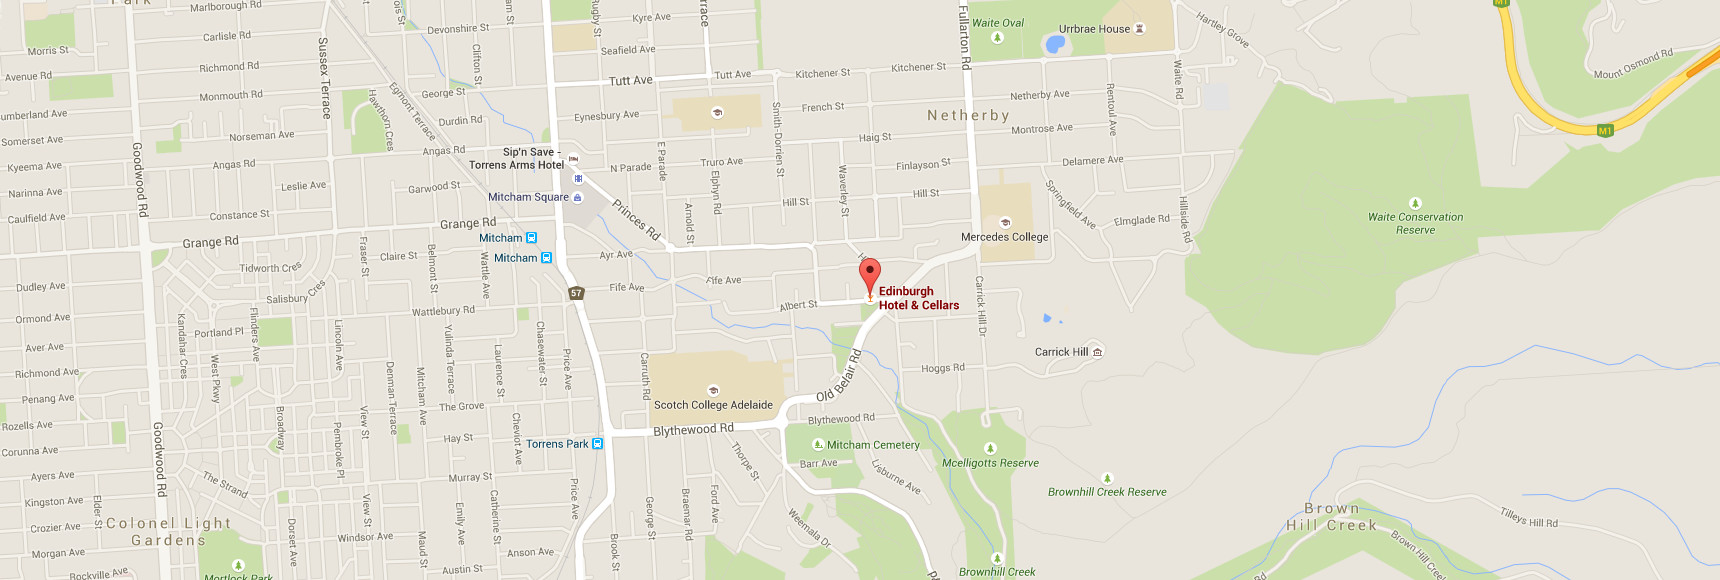 Map of location, 1-7 High Street, Mitcham, SA 5062 Australia